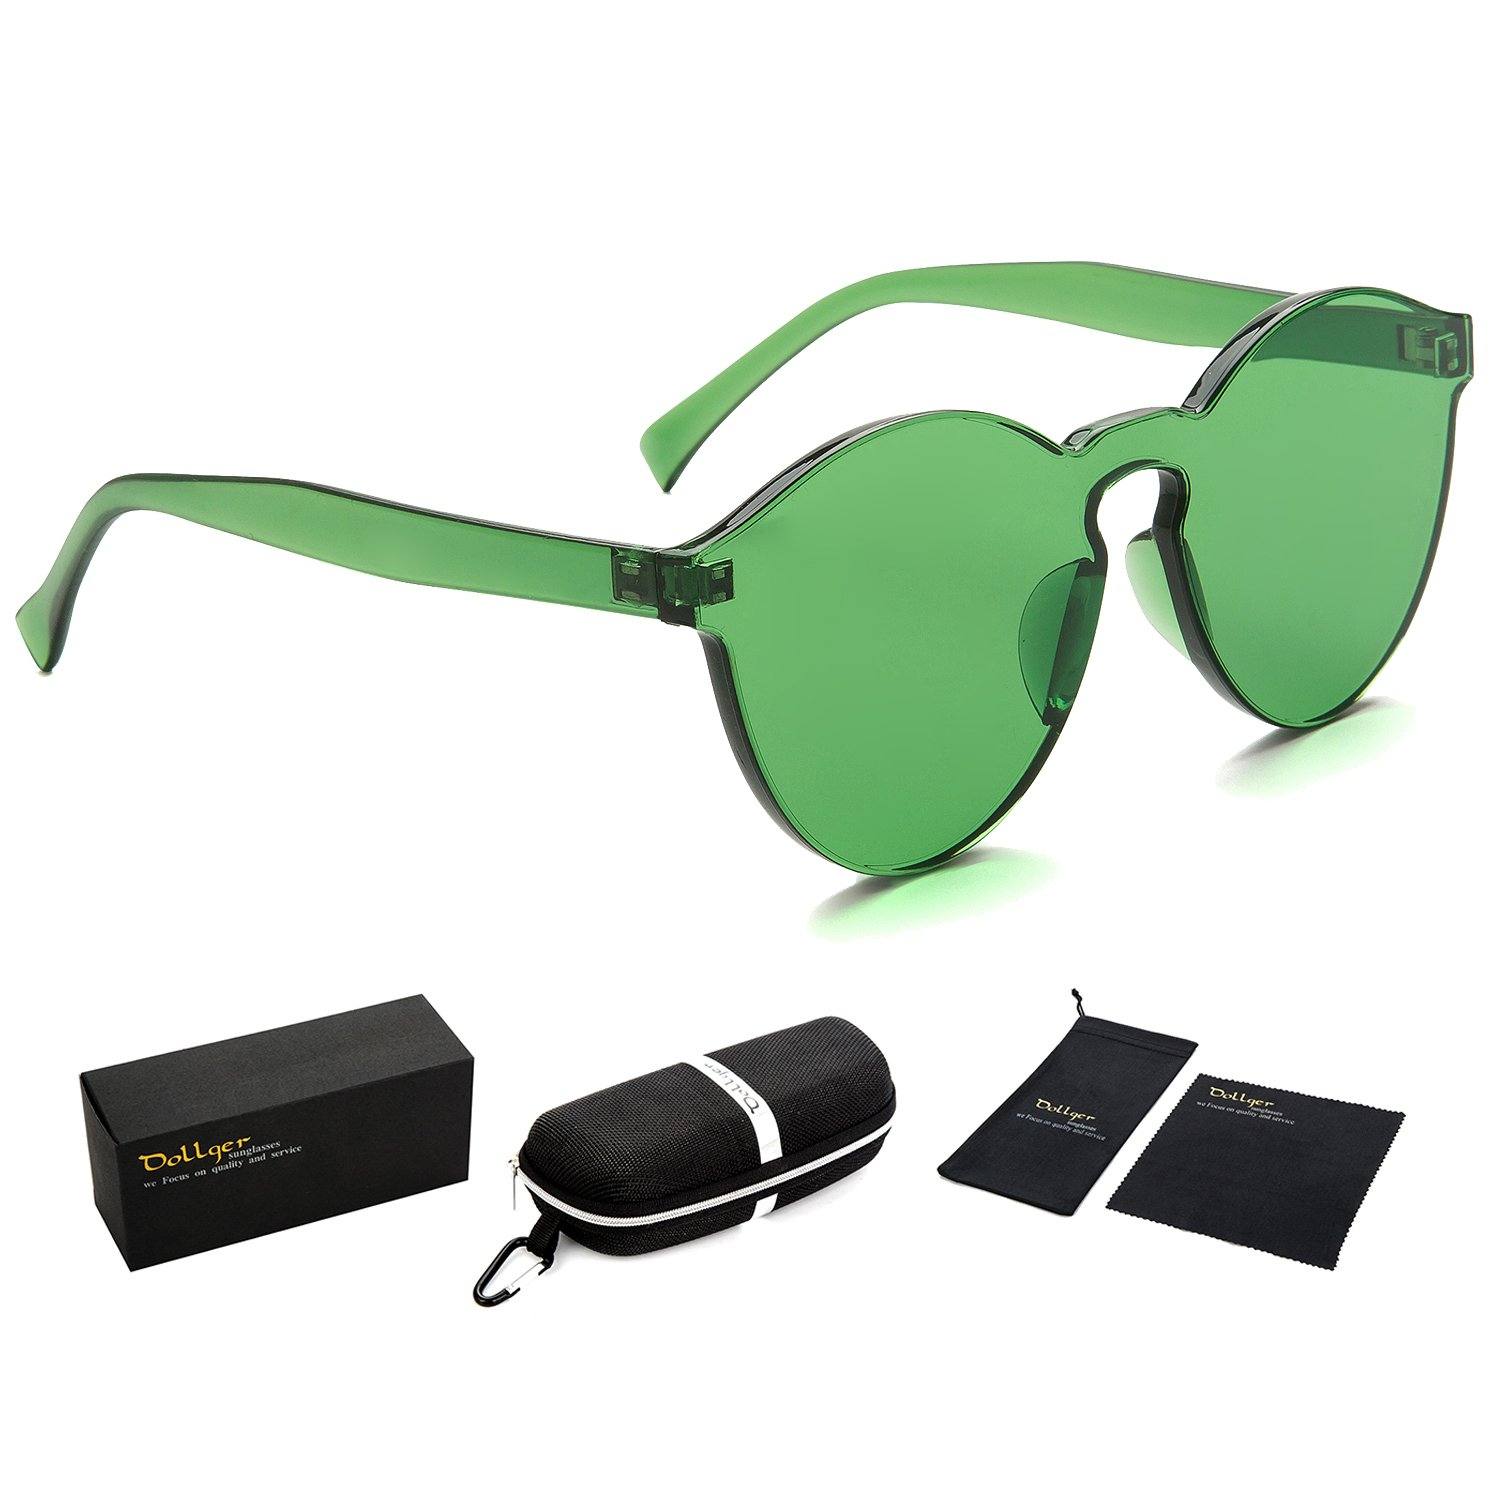 040a2ad2c8c Amazon.com  Dollger One Piece Transparent Tinted Rimless Cat Eye Sunglasses  with Candy Colors (Green